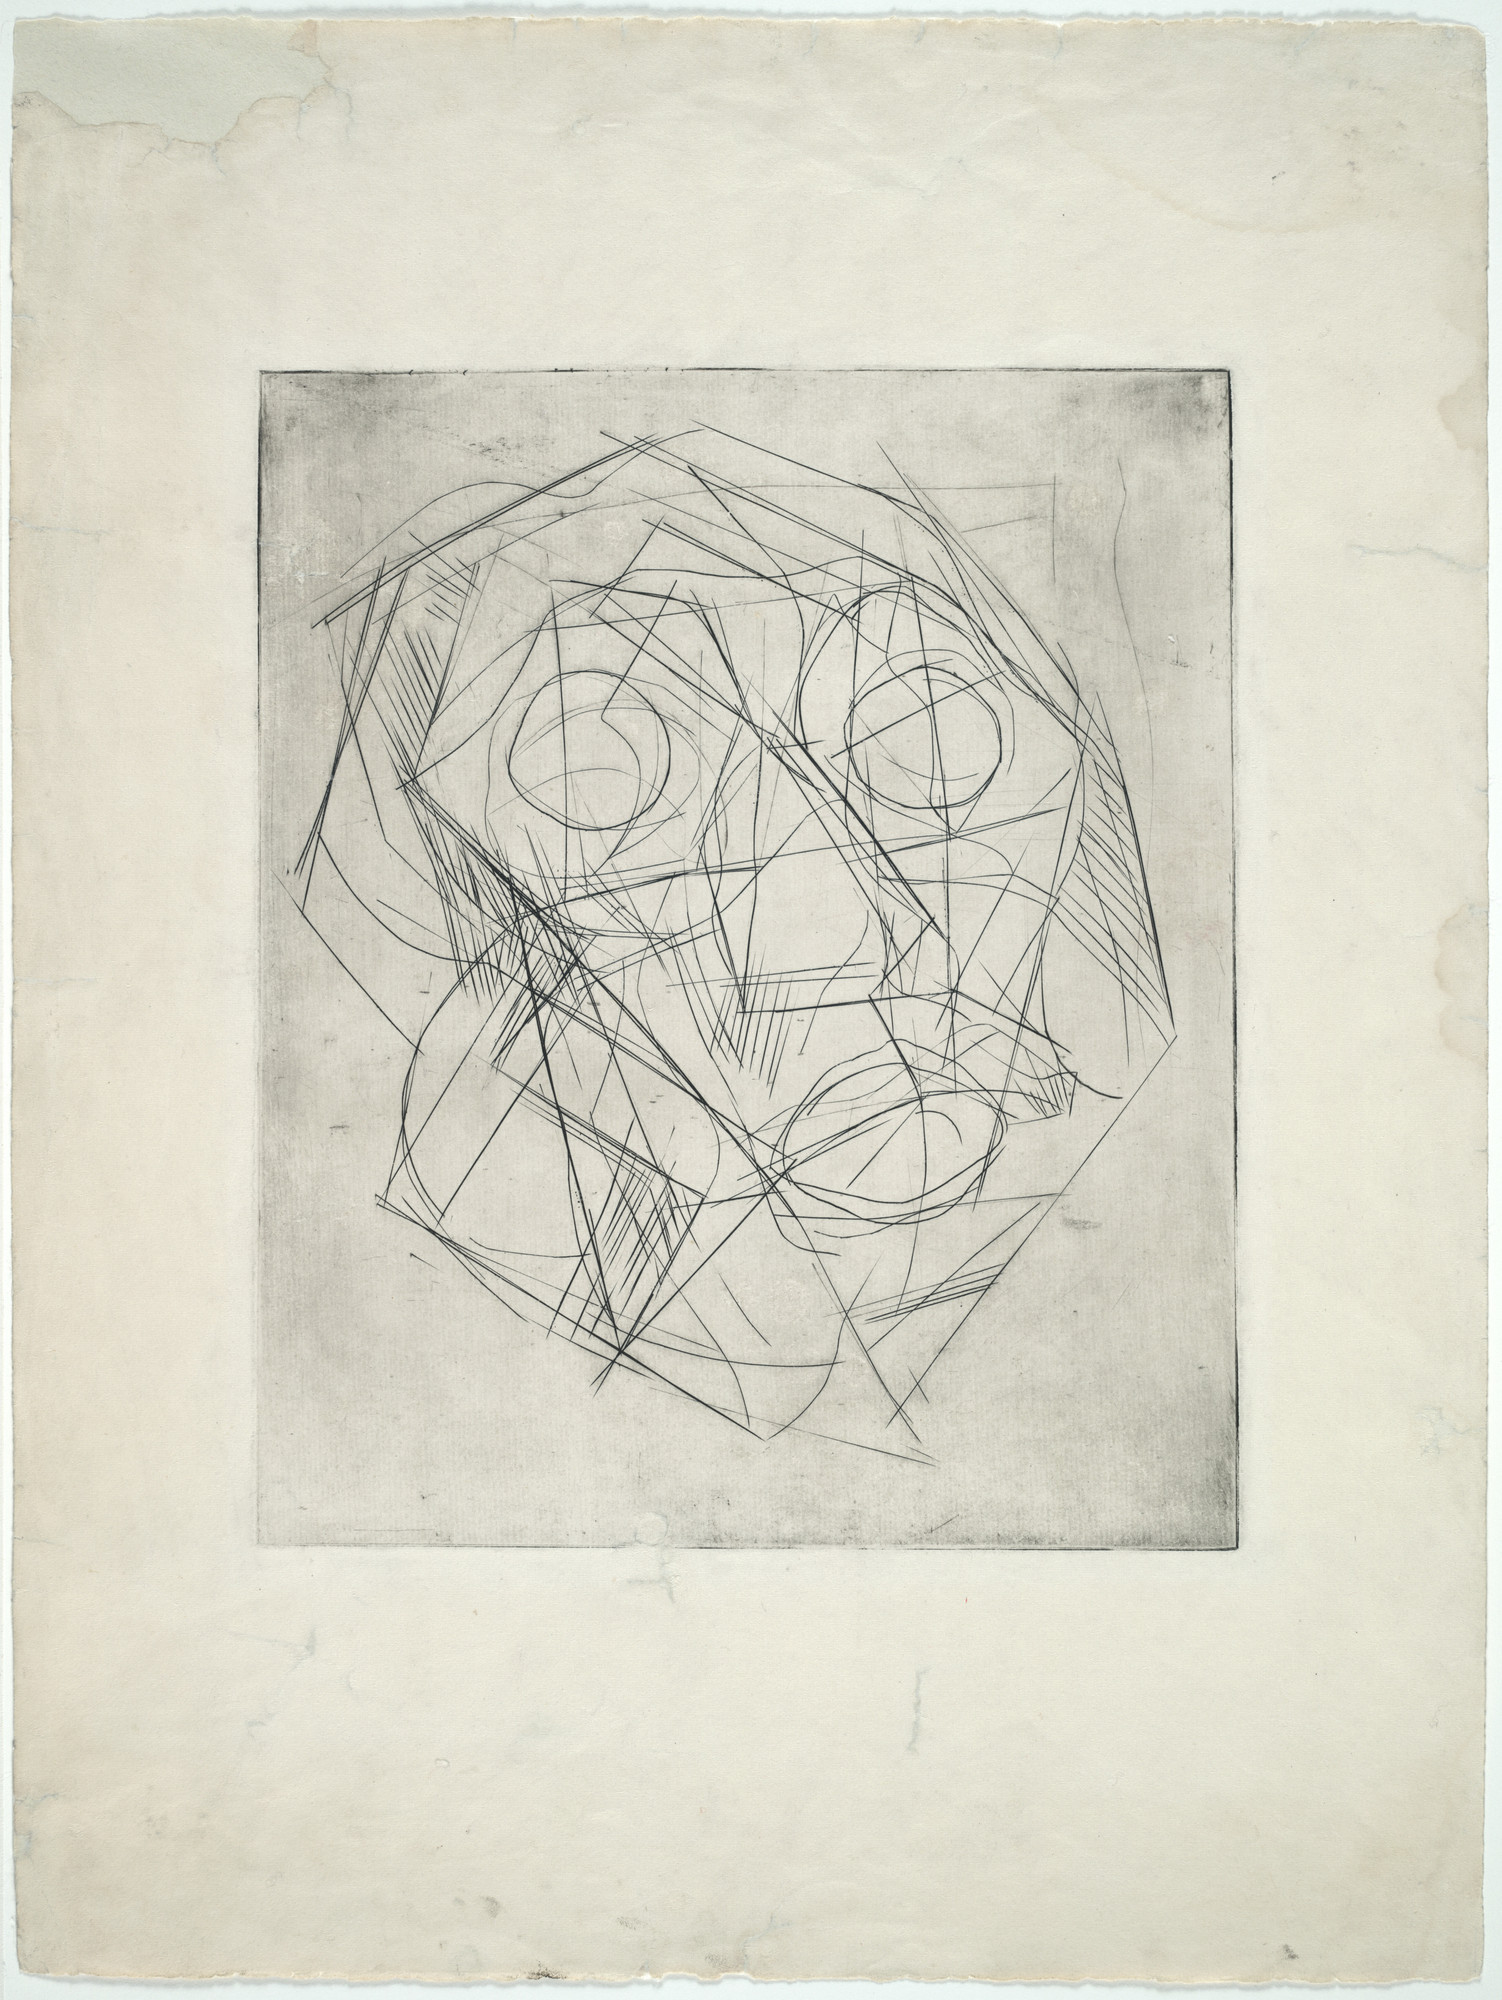 Alberto Giacometti. Cubist Head. 1933. Engraving, plate: 12 1/16 × 10ʺ (30.6 × 25.4 cm); sheet: 20 × 14 15/16ʺ (50.8 × 38 cm). Publisher: unpublished. Printer: the artist at Atelier 17, Paris. Edition: unique. Gift of Mr. Stanley W. Hayter. © 2016 Artists Rights Society (ARS), New York / ADAGP, Paris